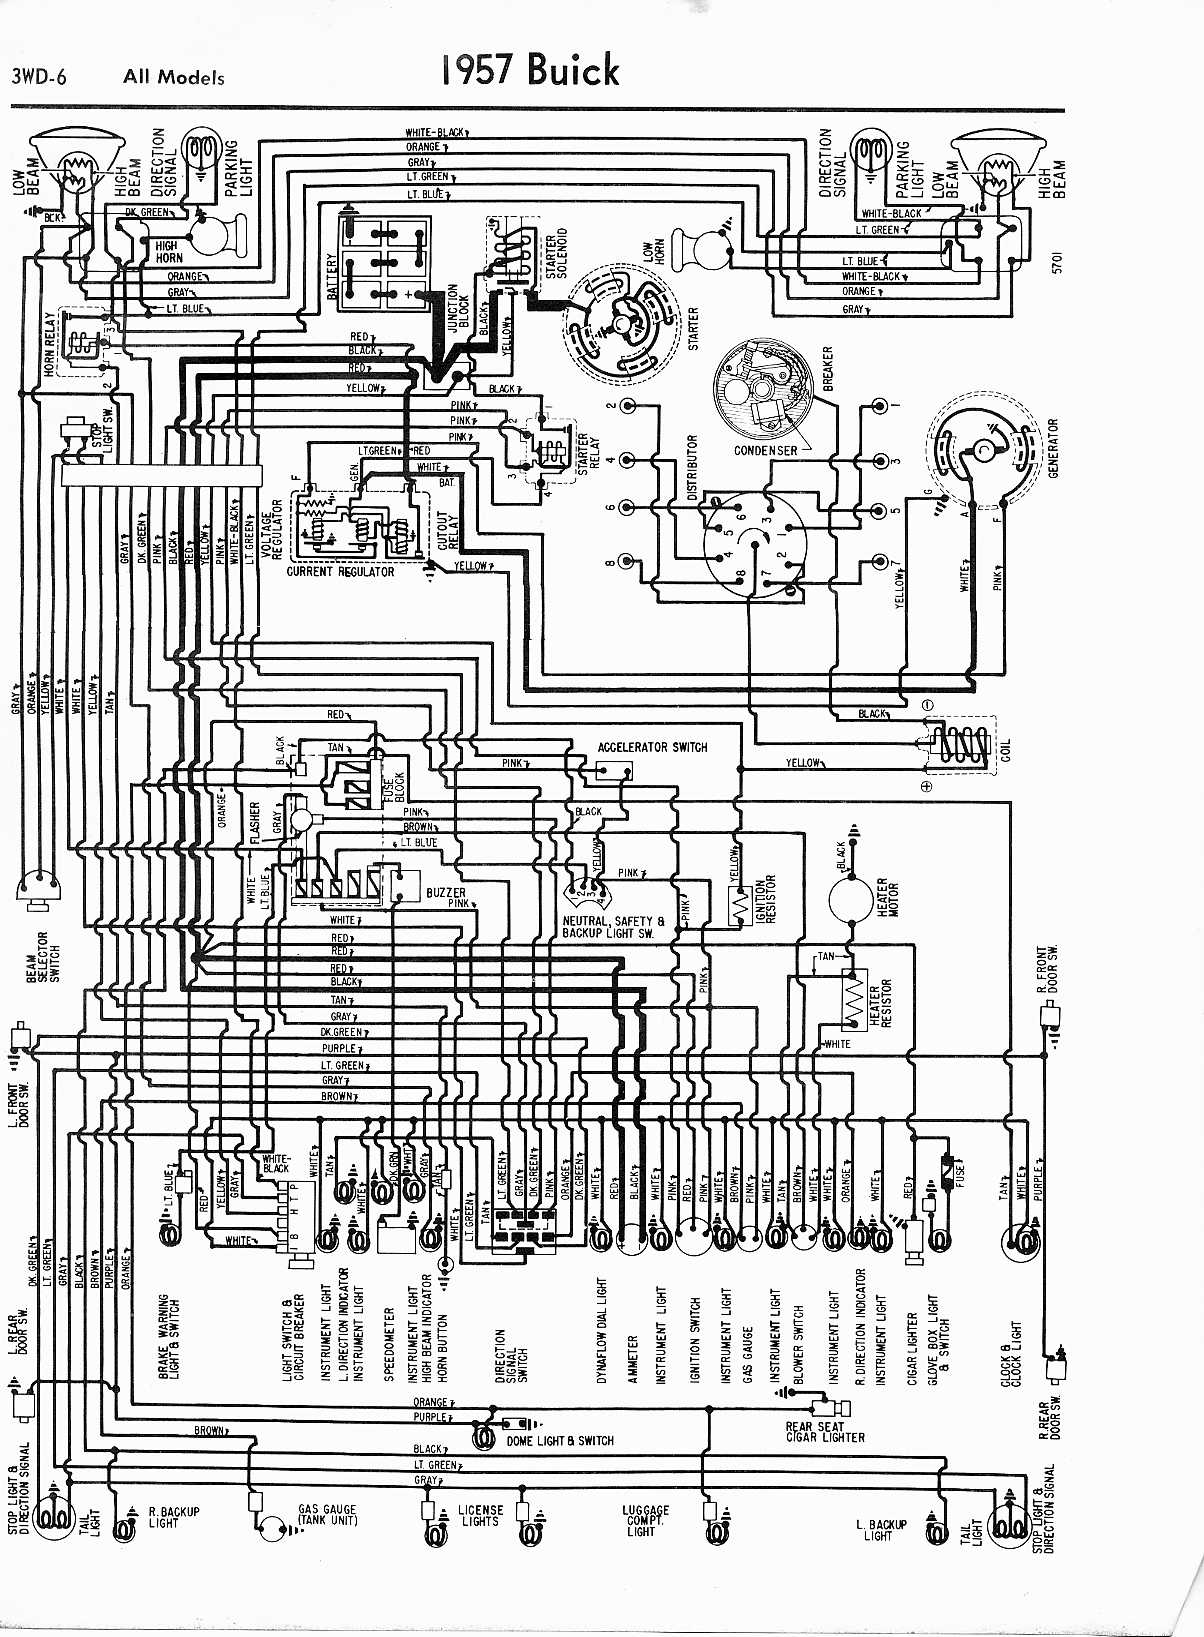 1958 Buick Wiring Diagram Library Corvette 1957 All Models